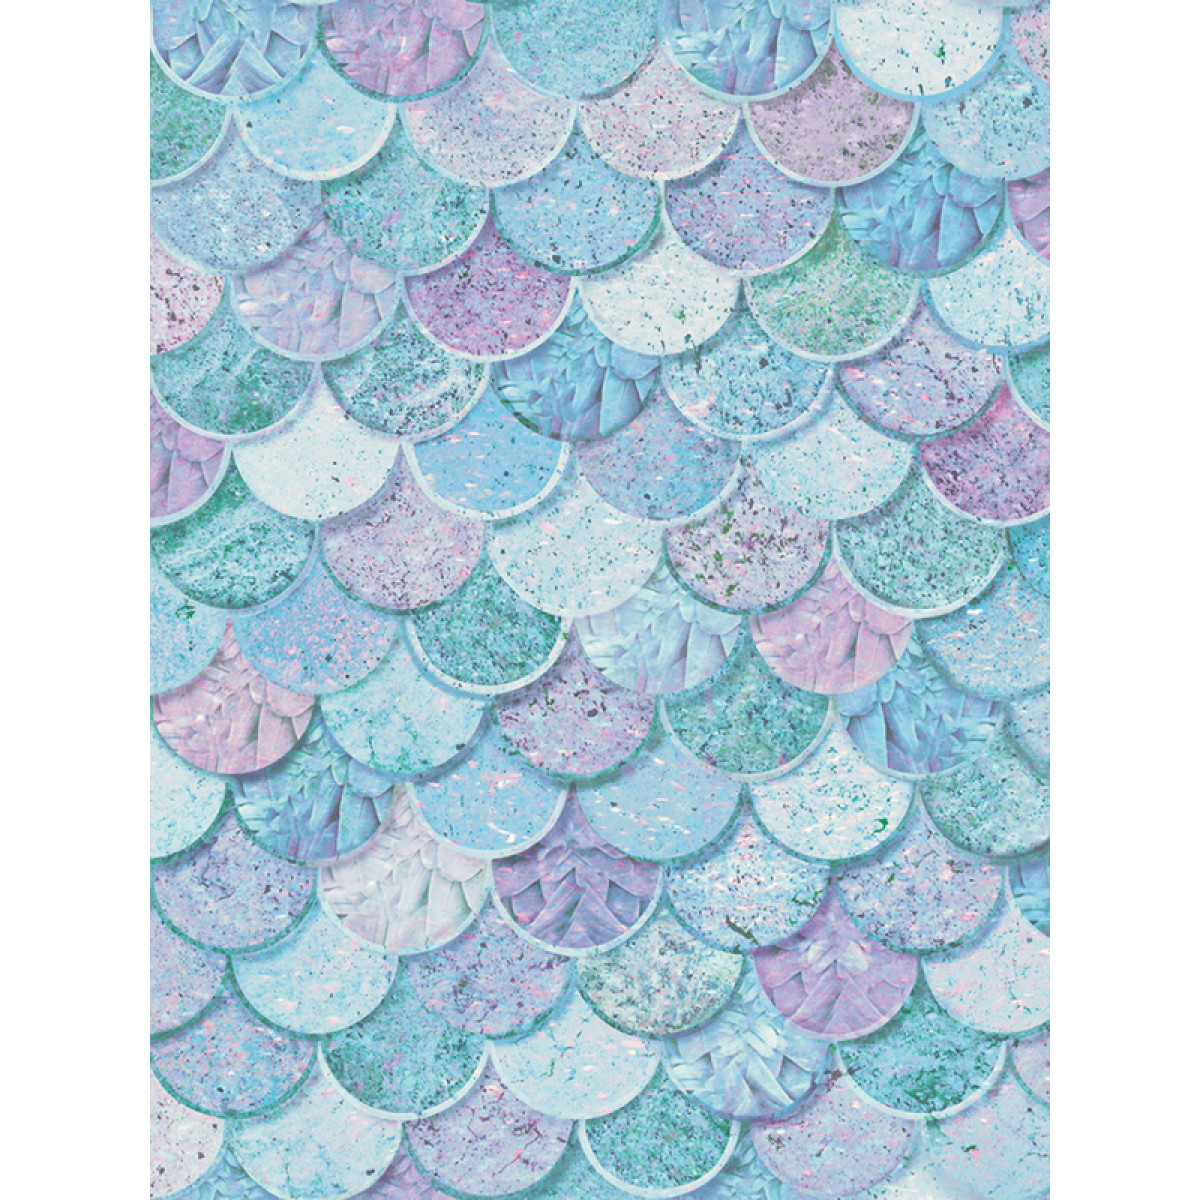 Mermazing Mermaid Scales Glitter Wallpaper Ice Blue Aqua